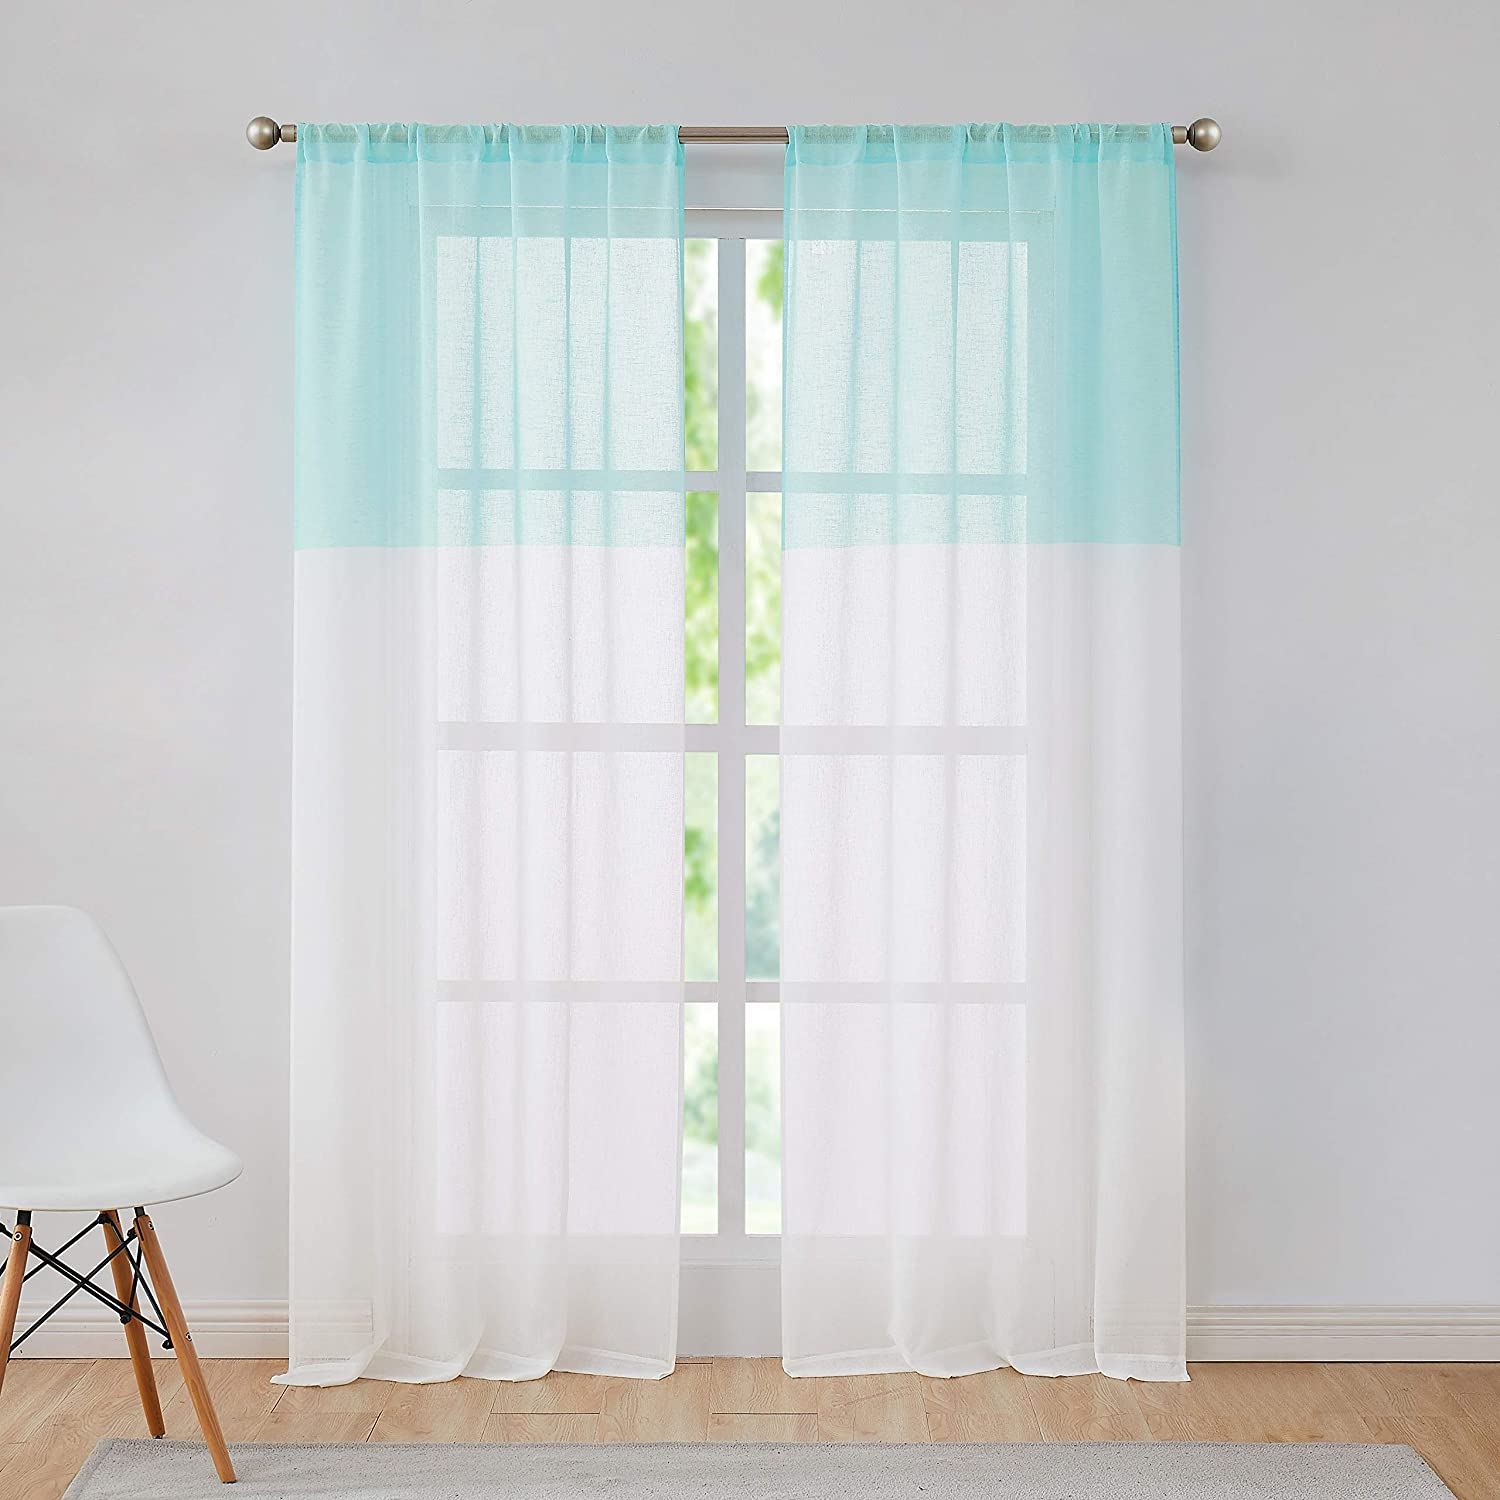 Central Park Spa Blue and White Stripe Sheer Color Block Window Curtain Panel Pairs Linen Drape Treatment for Bedroom Living Room Farmhouse 63 inches Long with Rod Pocket,2 Panel Rustic Living Panels